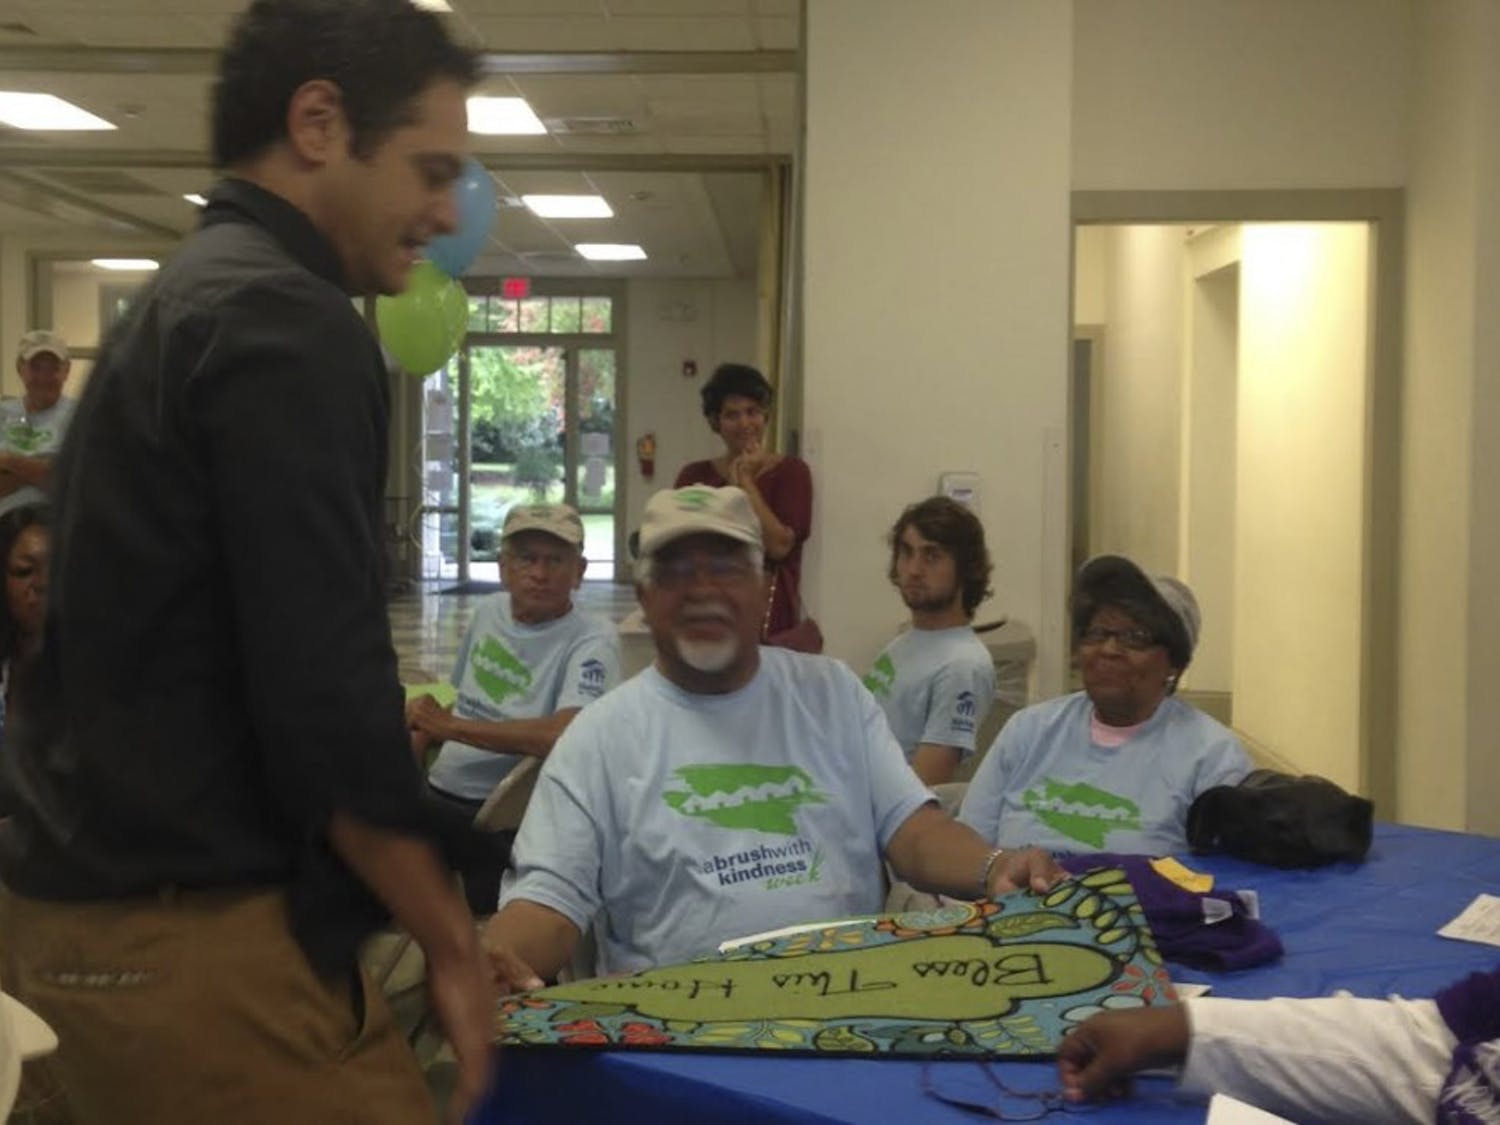 Mayor Mark Kleinschmidt (left) presents Prince (center) and Jean Taylor with a doormat and T-shirts.